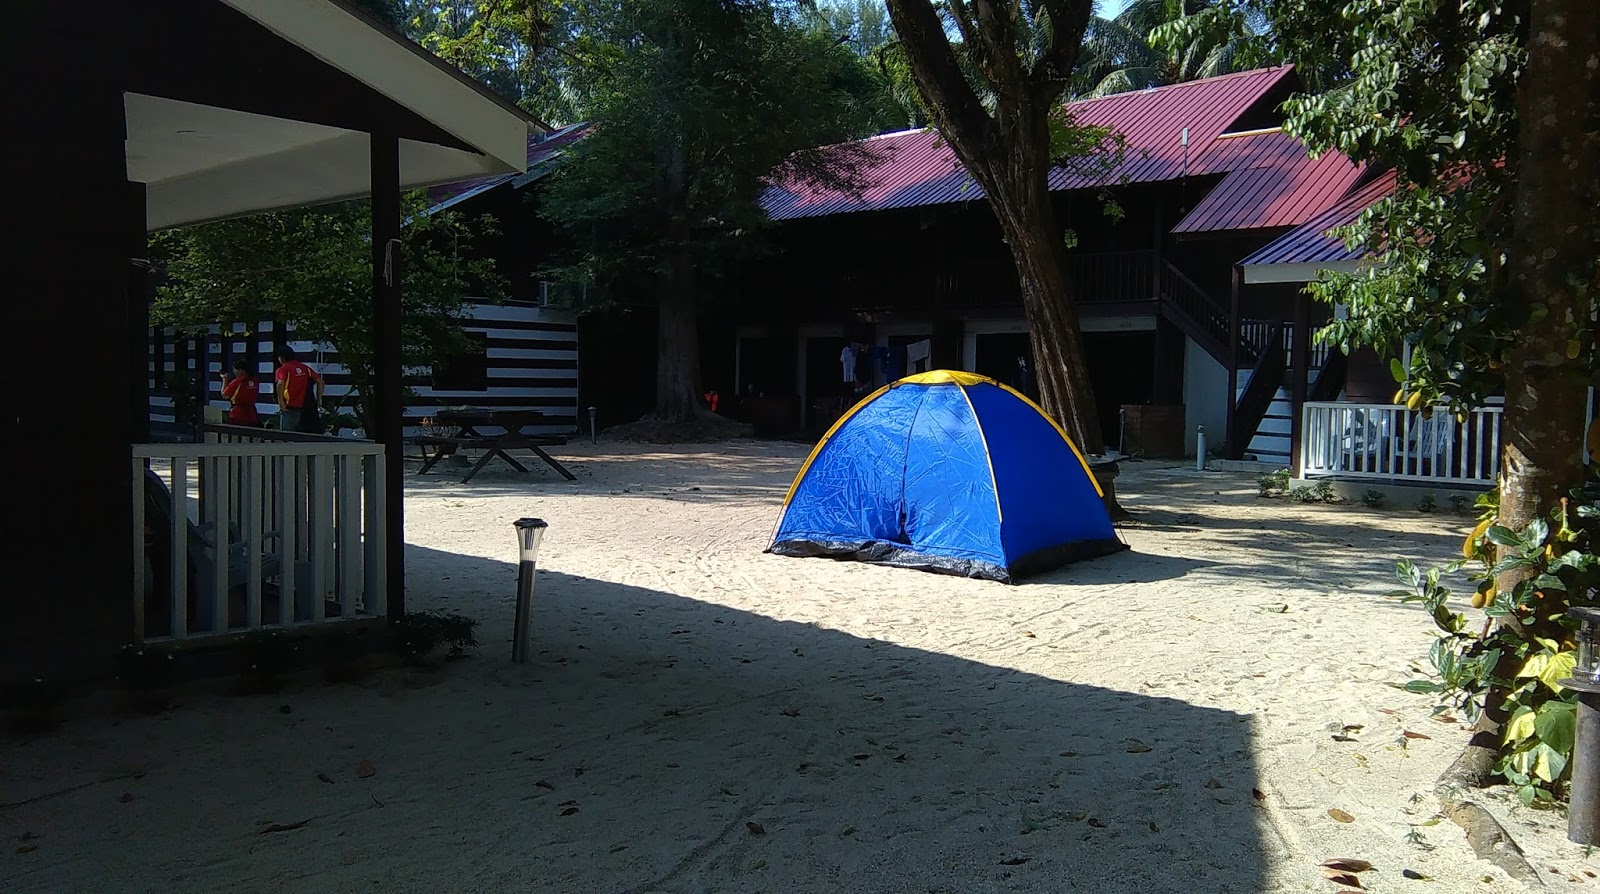 There Are Plenty Of Budget And Mid Range Accommodation On The Perhentian Islands Prices From Cheap Around RM50 To Pretty Expensive RM300